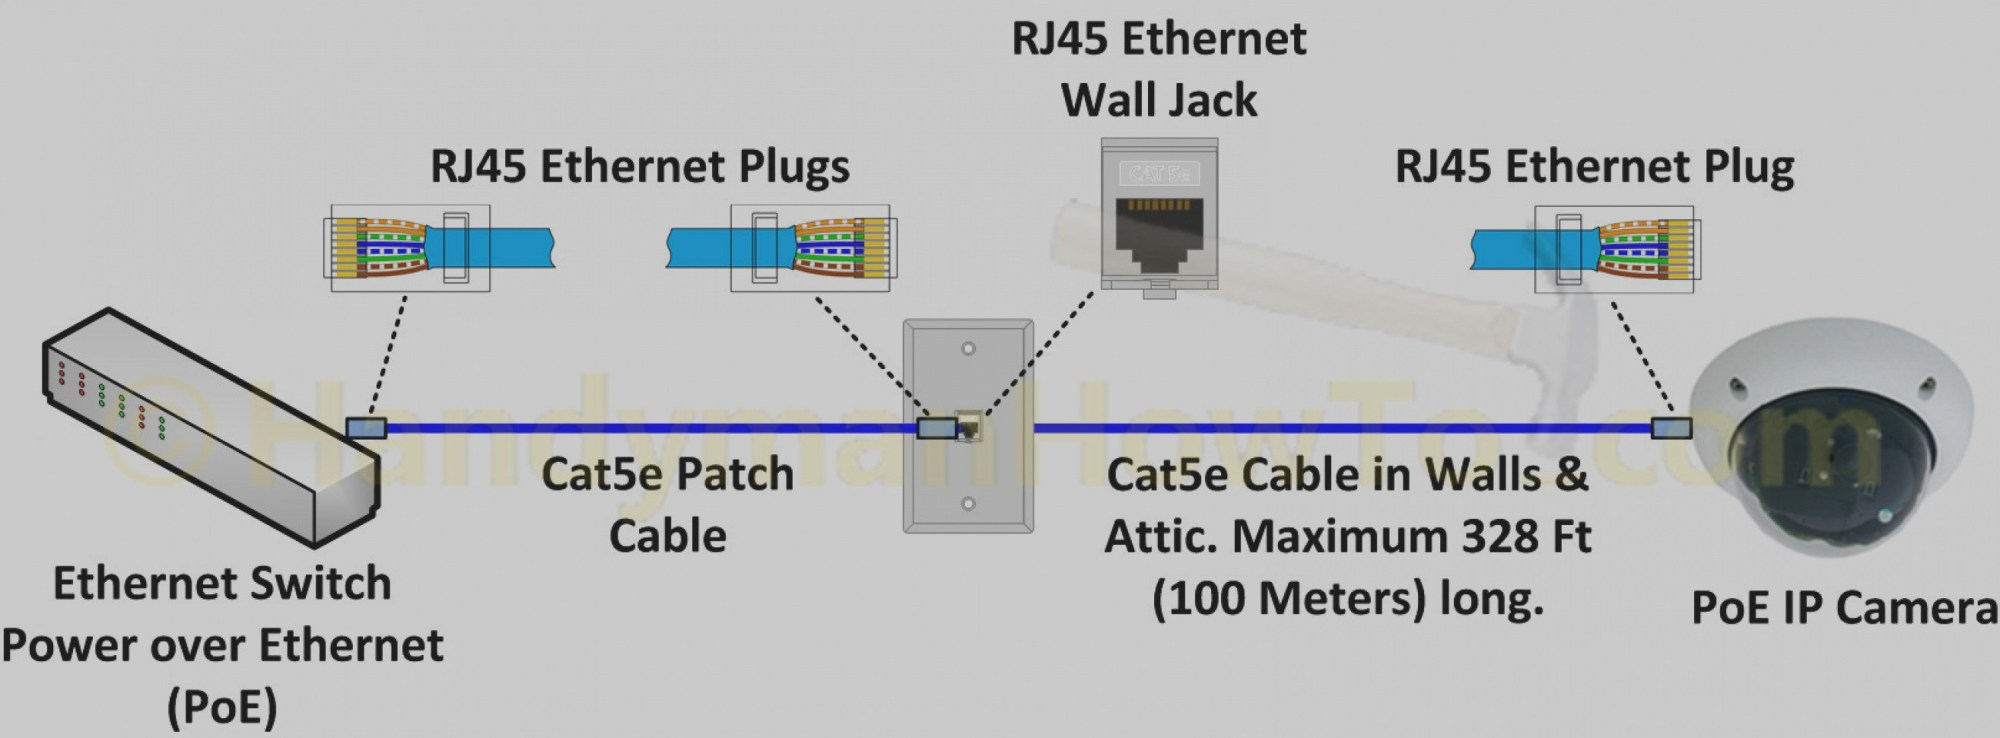 hight resolution of rj45 punch down block wiring diagram wiring diagram experts rj45 wiring block diagram